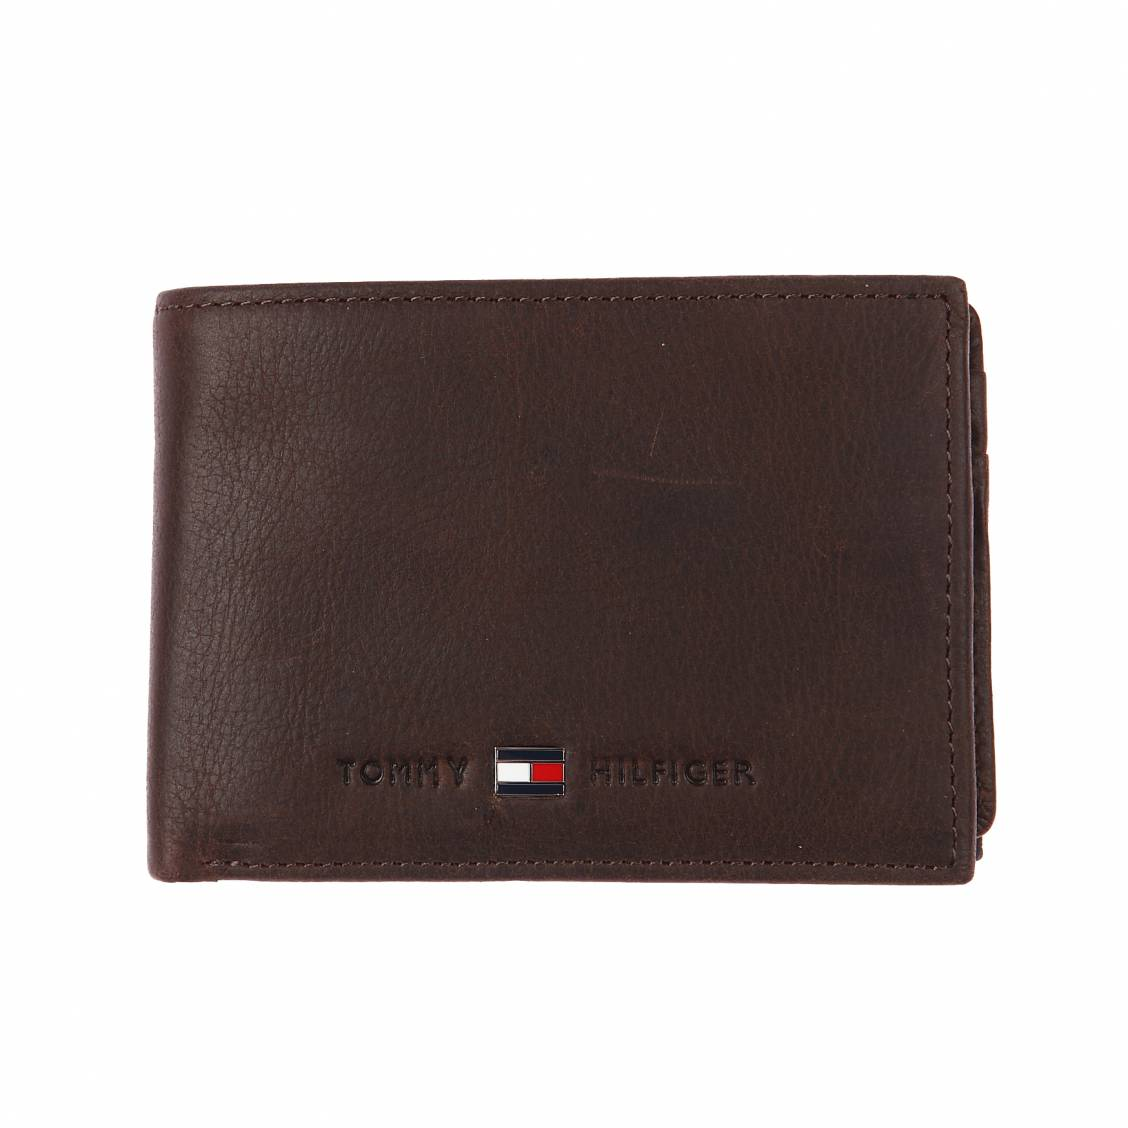 Tommy Hilfiger Portefeuille italien Johnson - 10 cartes Marron TlLPc2jW